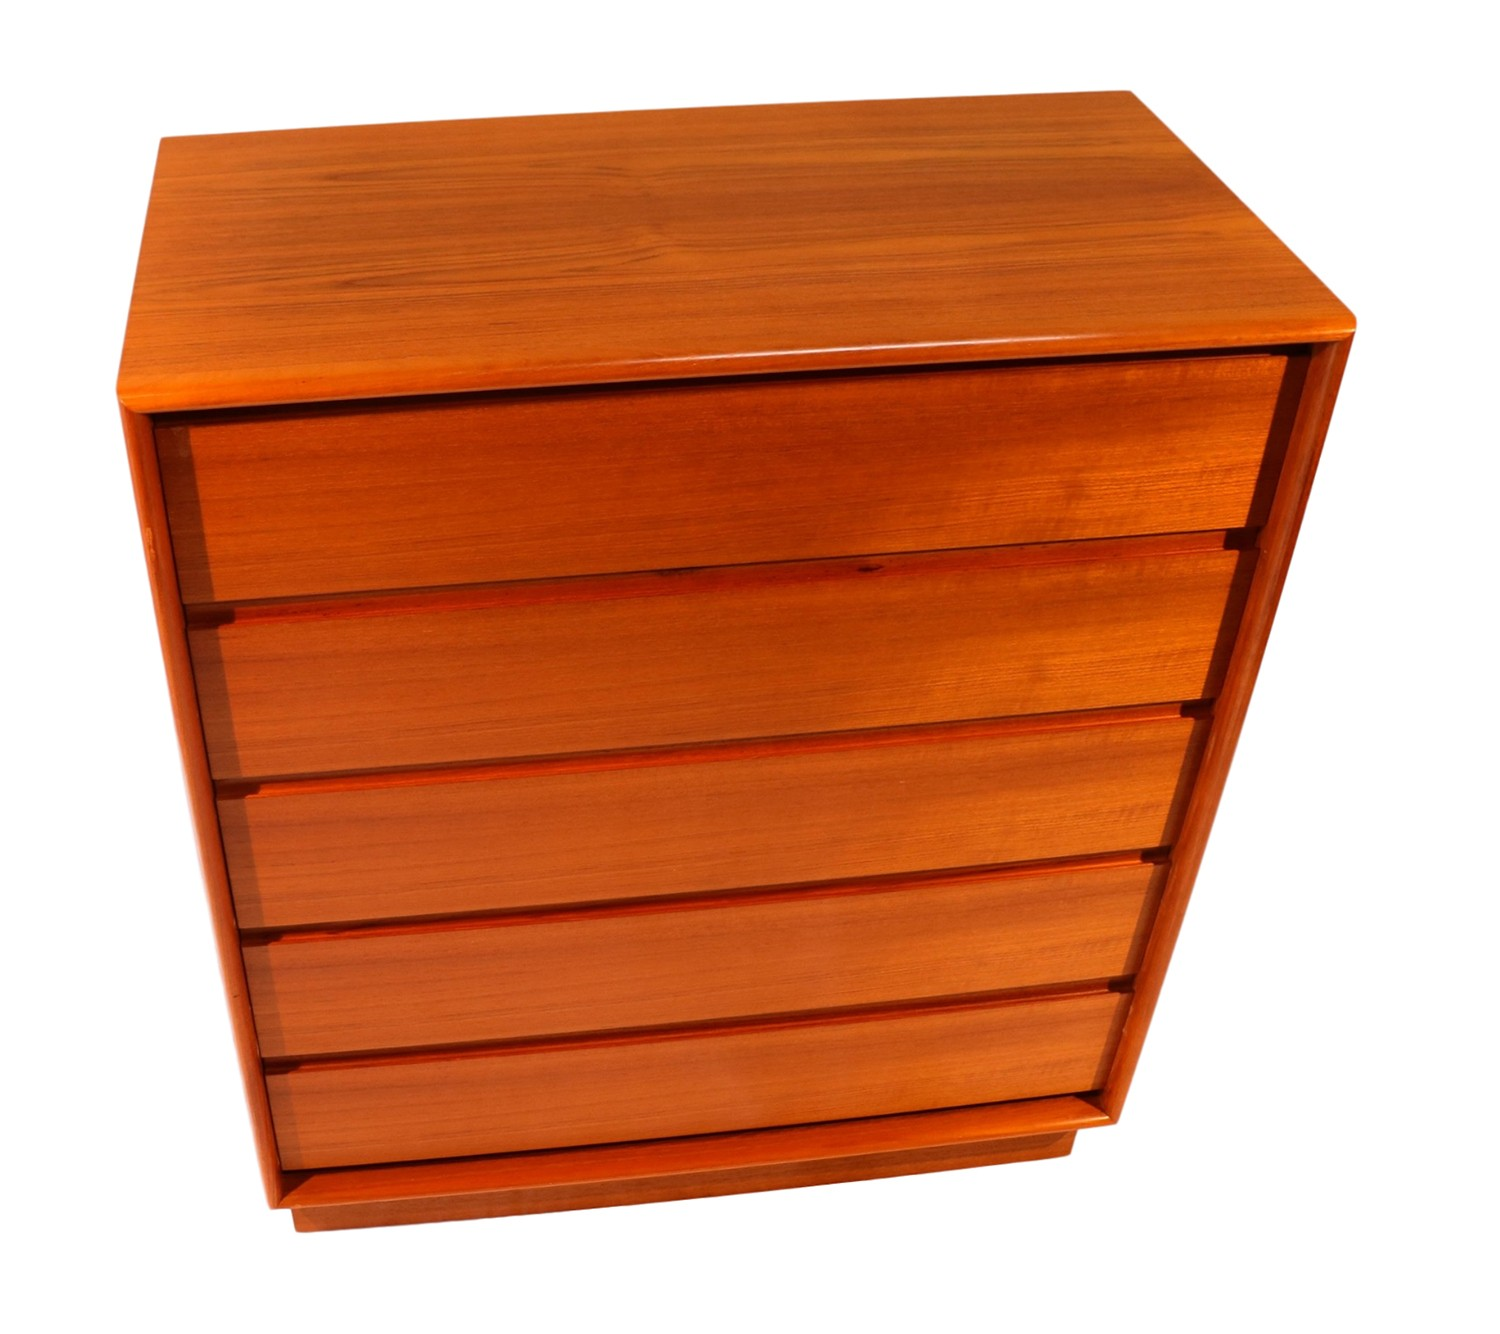 Danish Modern Teak Tall Slim Dresser Chest